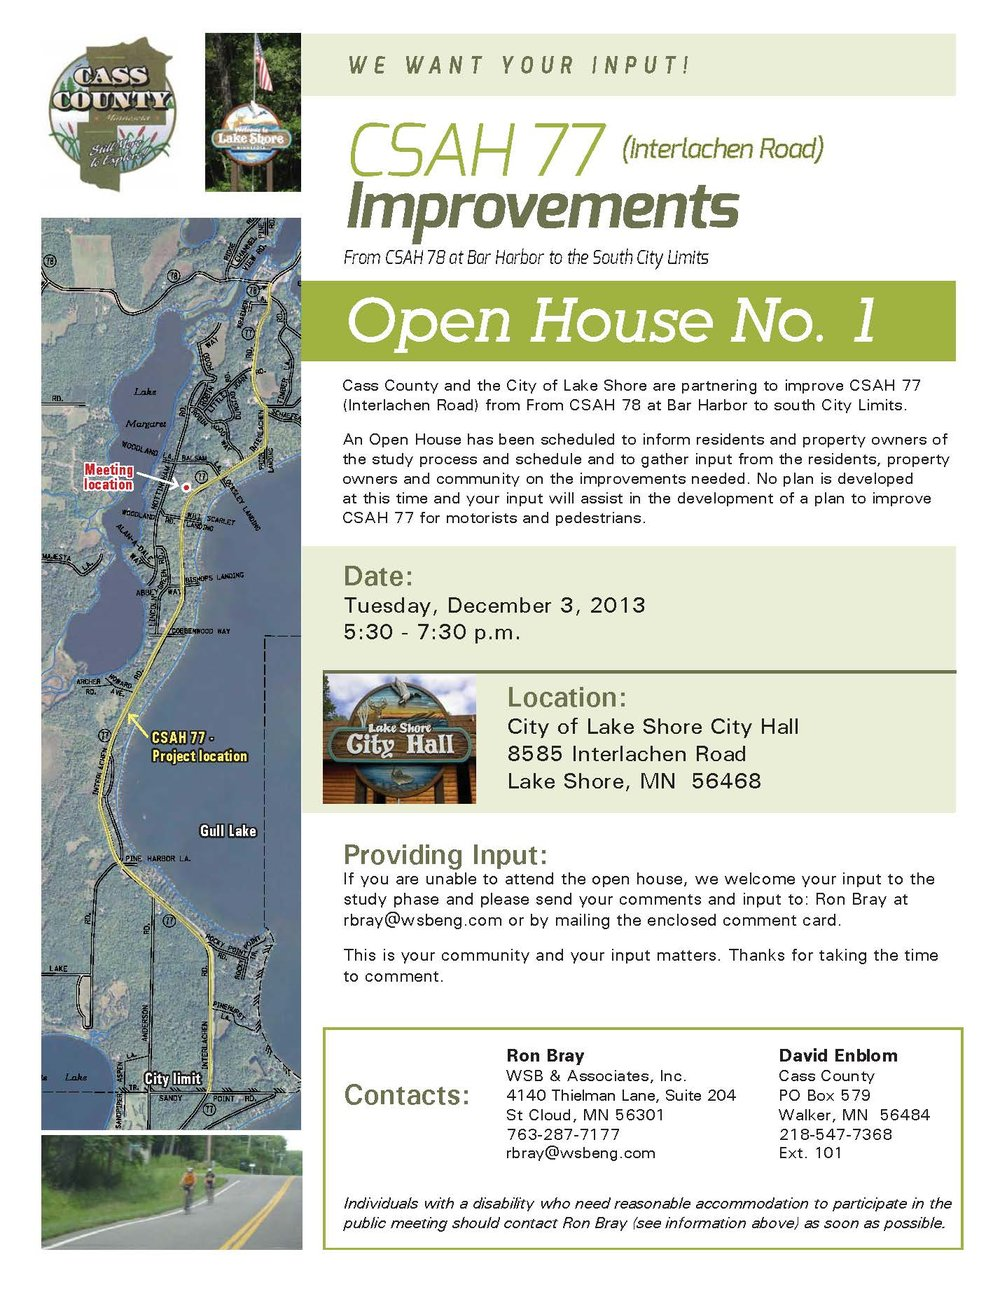 Cass County Open House 1 Flier.jpg